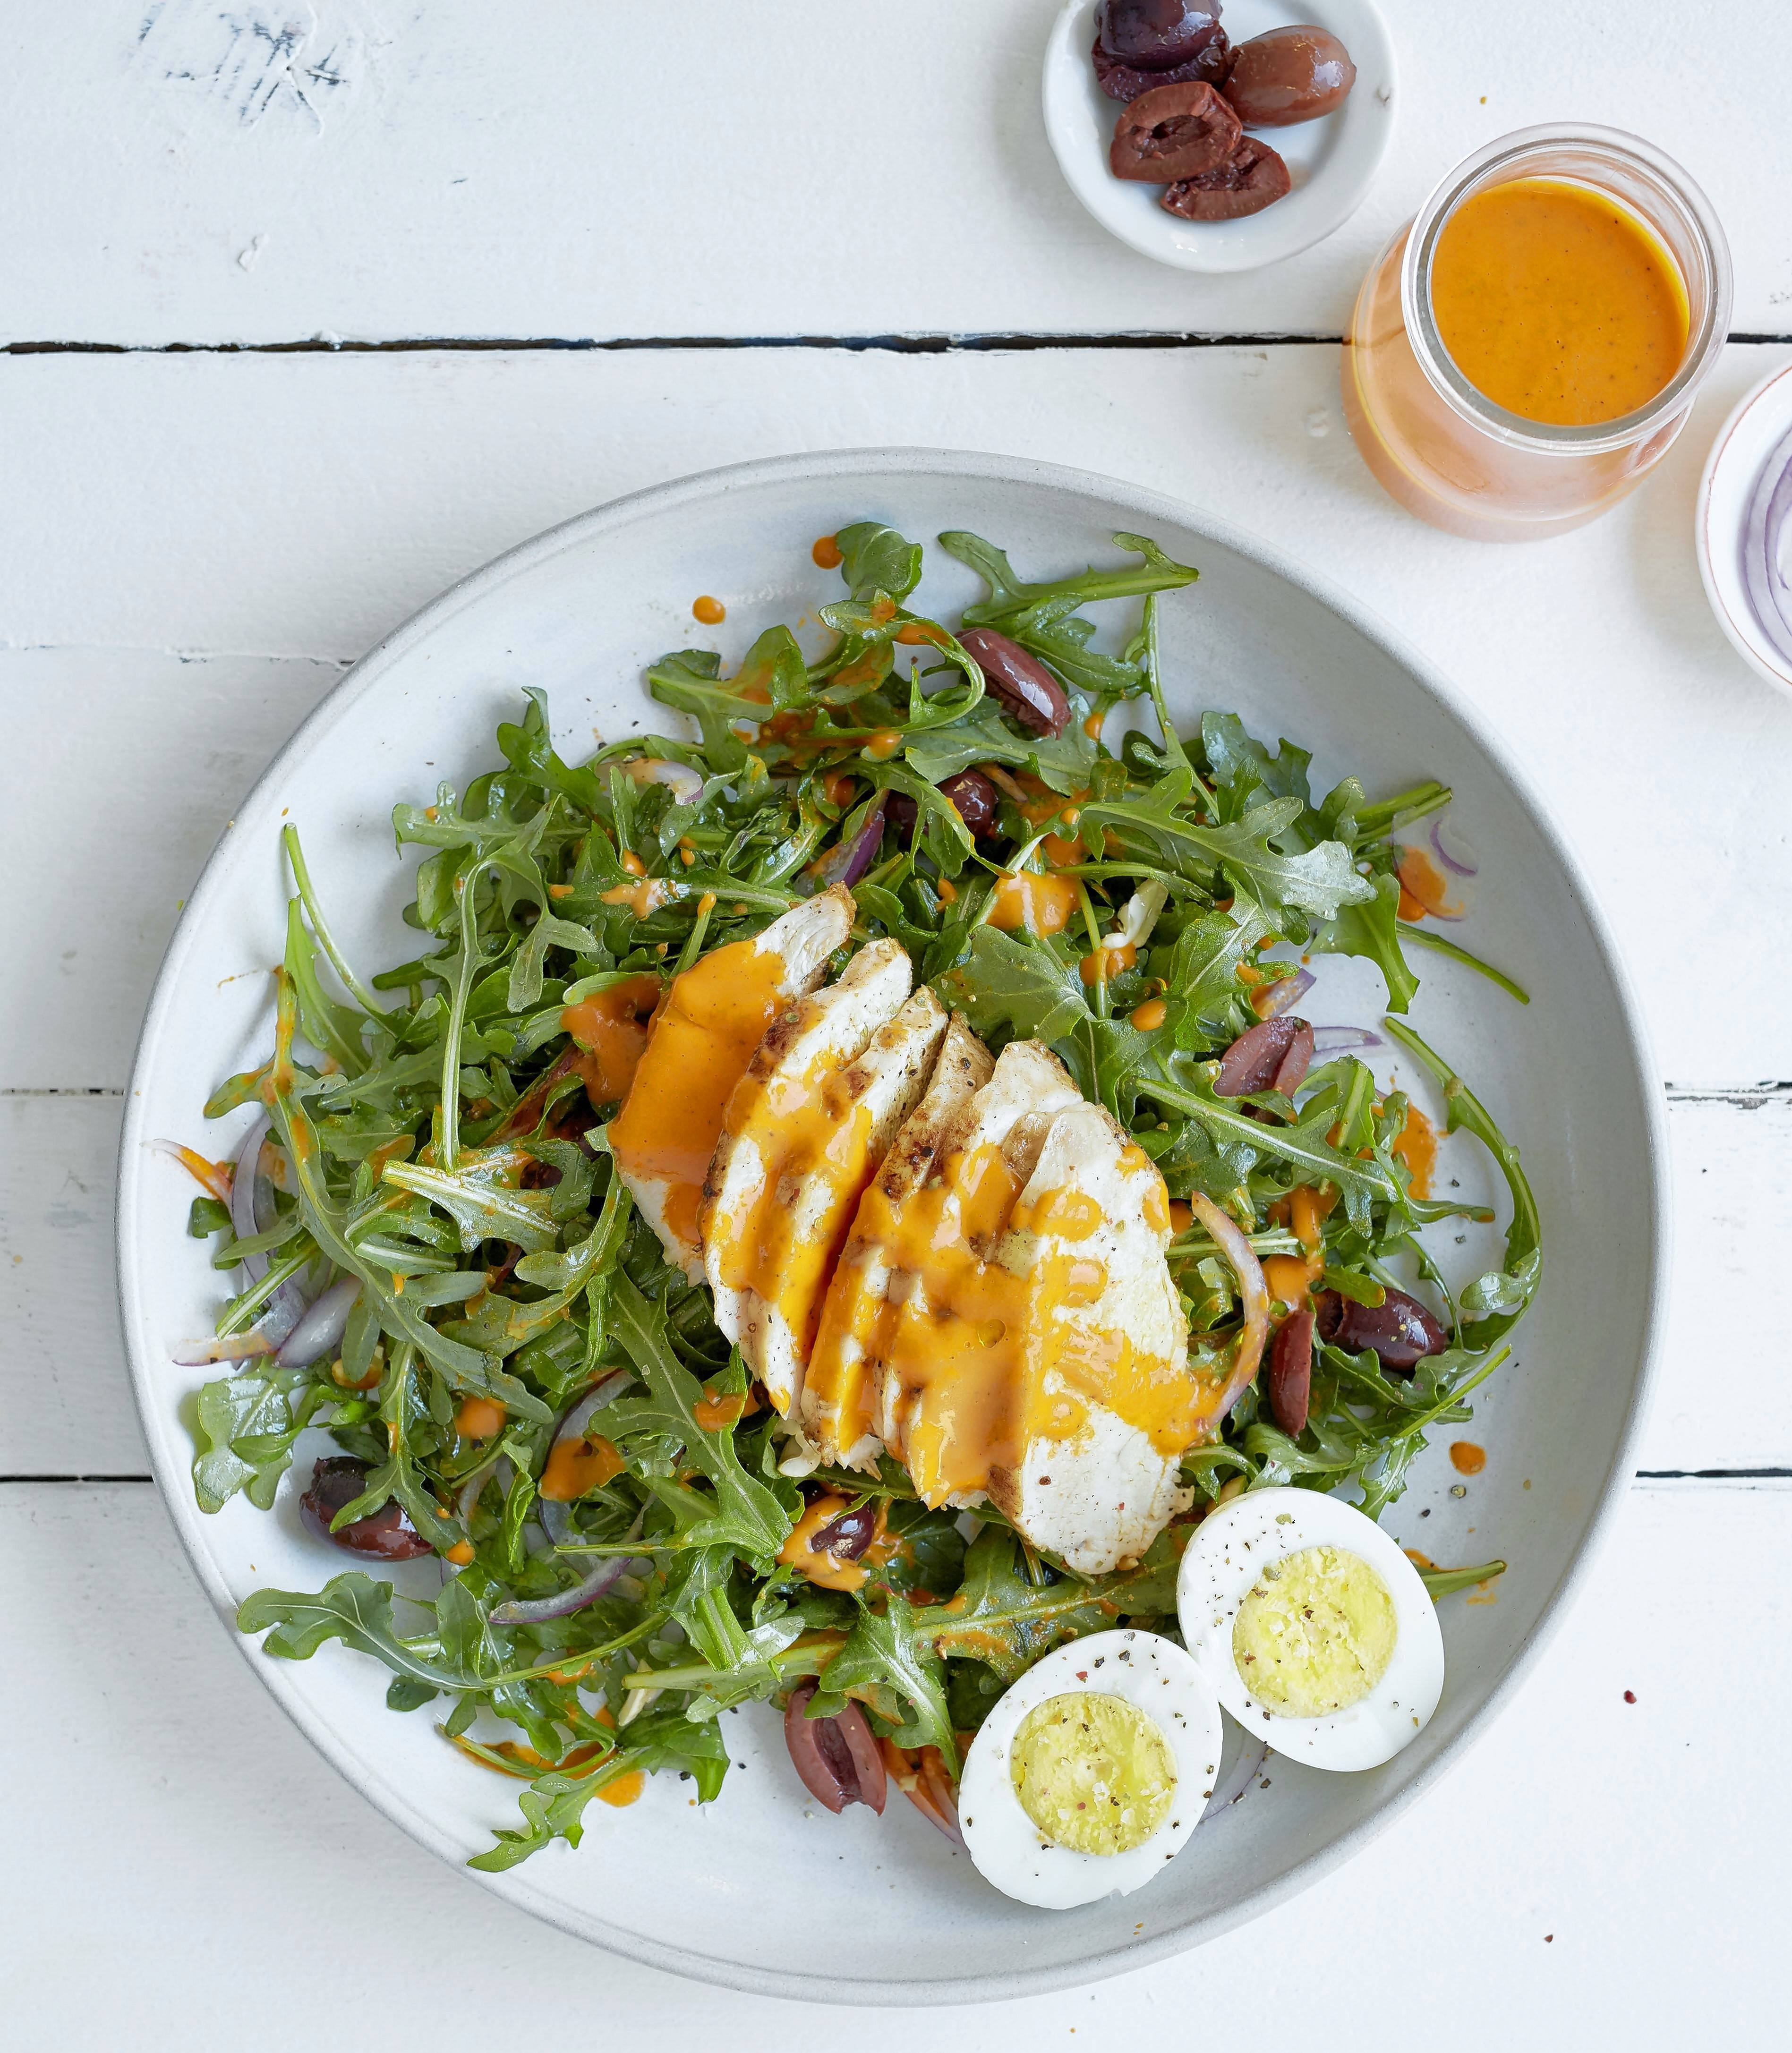 Chicken and Arugula Salad with Roasted Red Pepper Vinaigrette